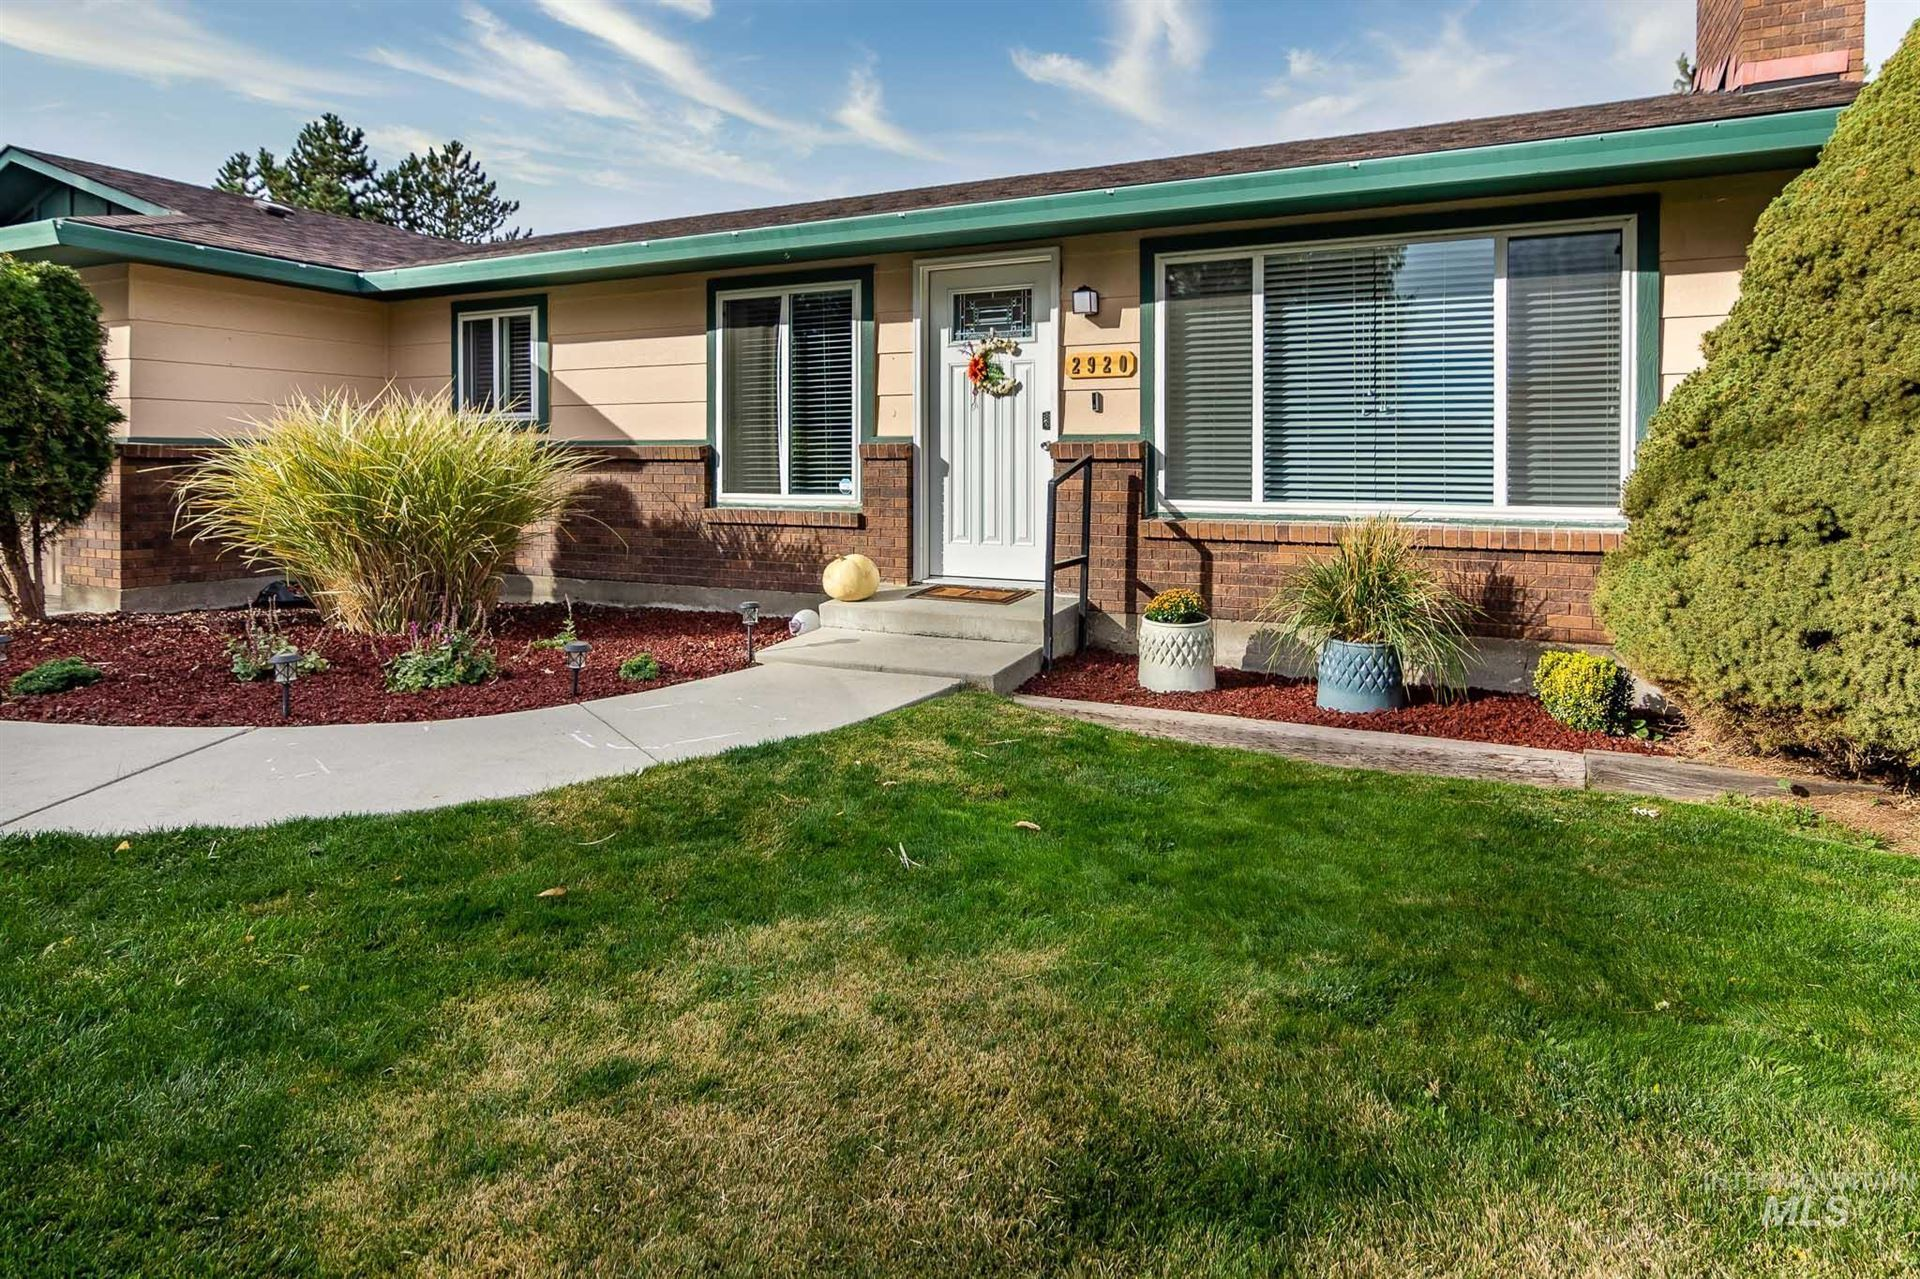 Photo of 2920 S 10th Ave, Caldwell, ID 83605 (MLS # 98823252)